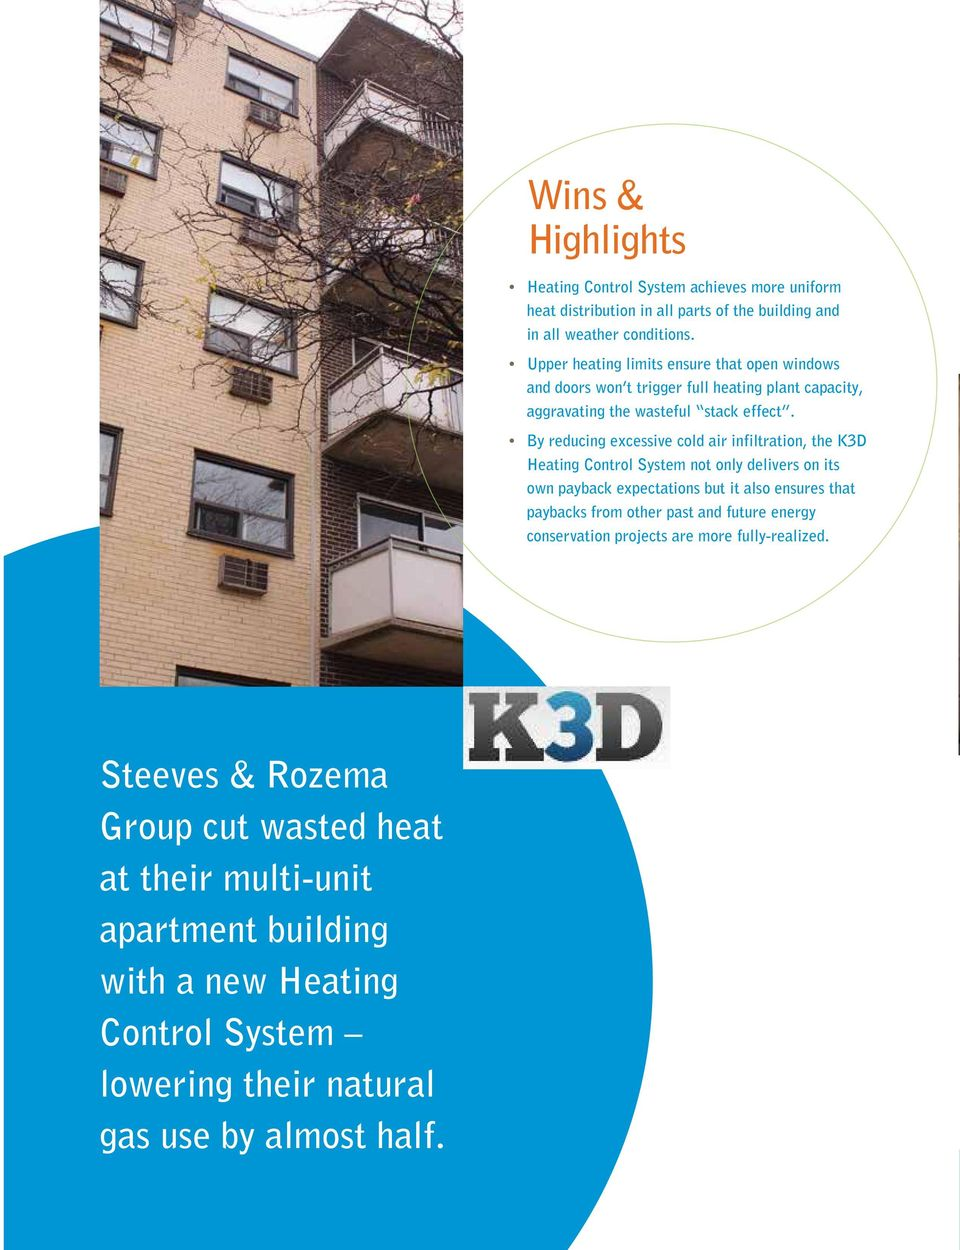 By reducing excessive cold air infiltration, the K3D Heating Control System not only delivers on its own payback expectations but it also ensures that paybacks from